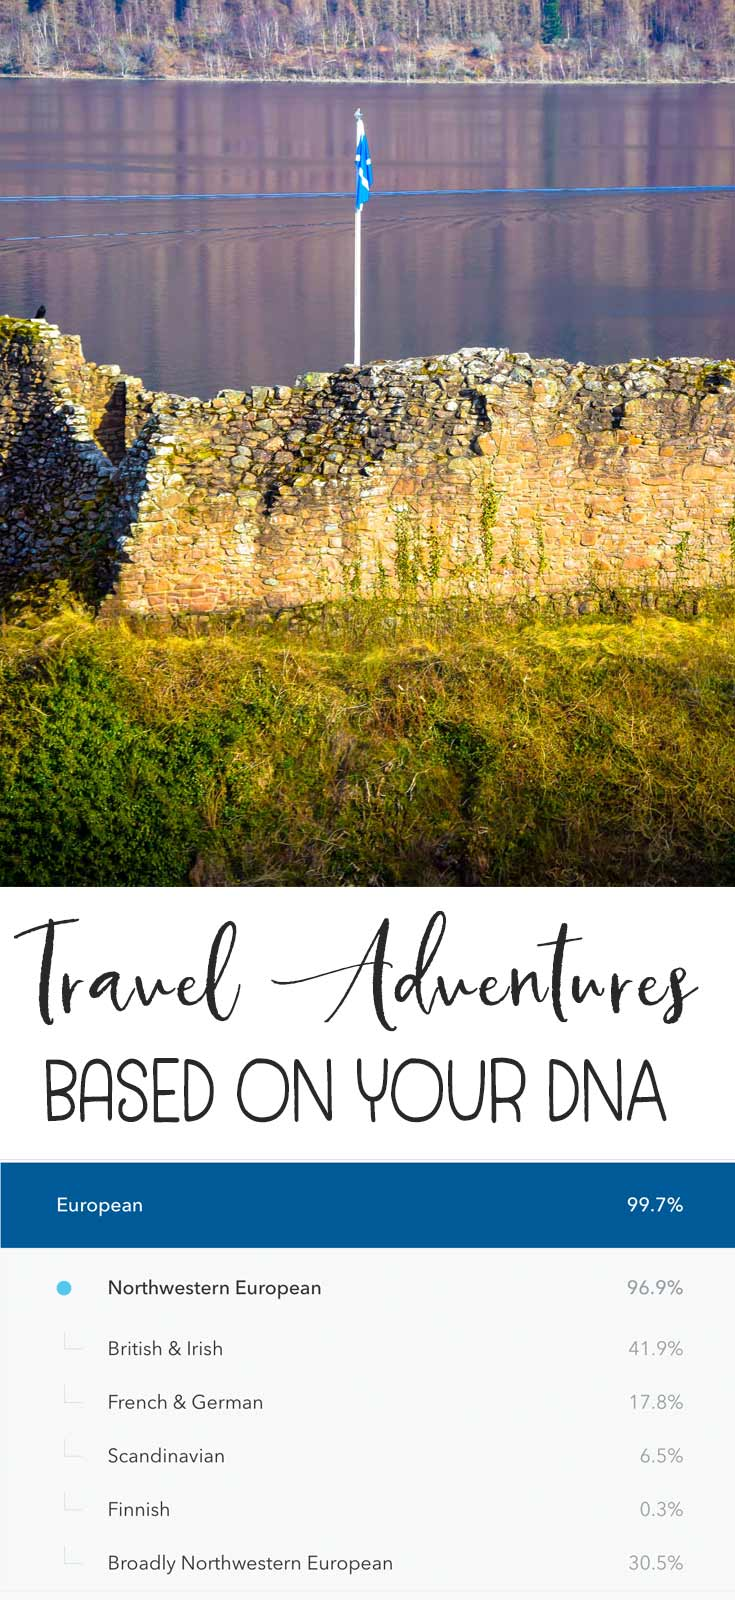 Thinking about your next travel adventure? Have you ever considered taking a trip based on what a dna test tells you about yourself? Find tips and tricks to plan your next epic adventure! via @mrsmajorhoff